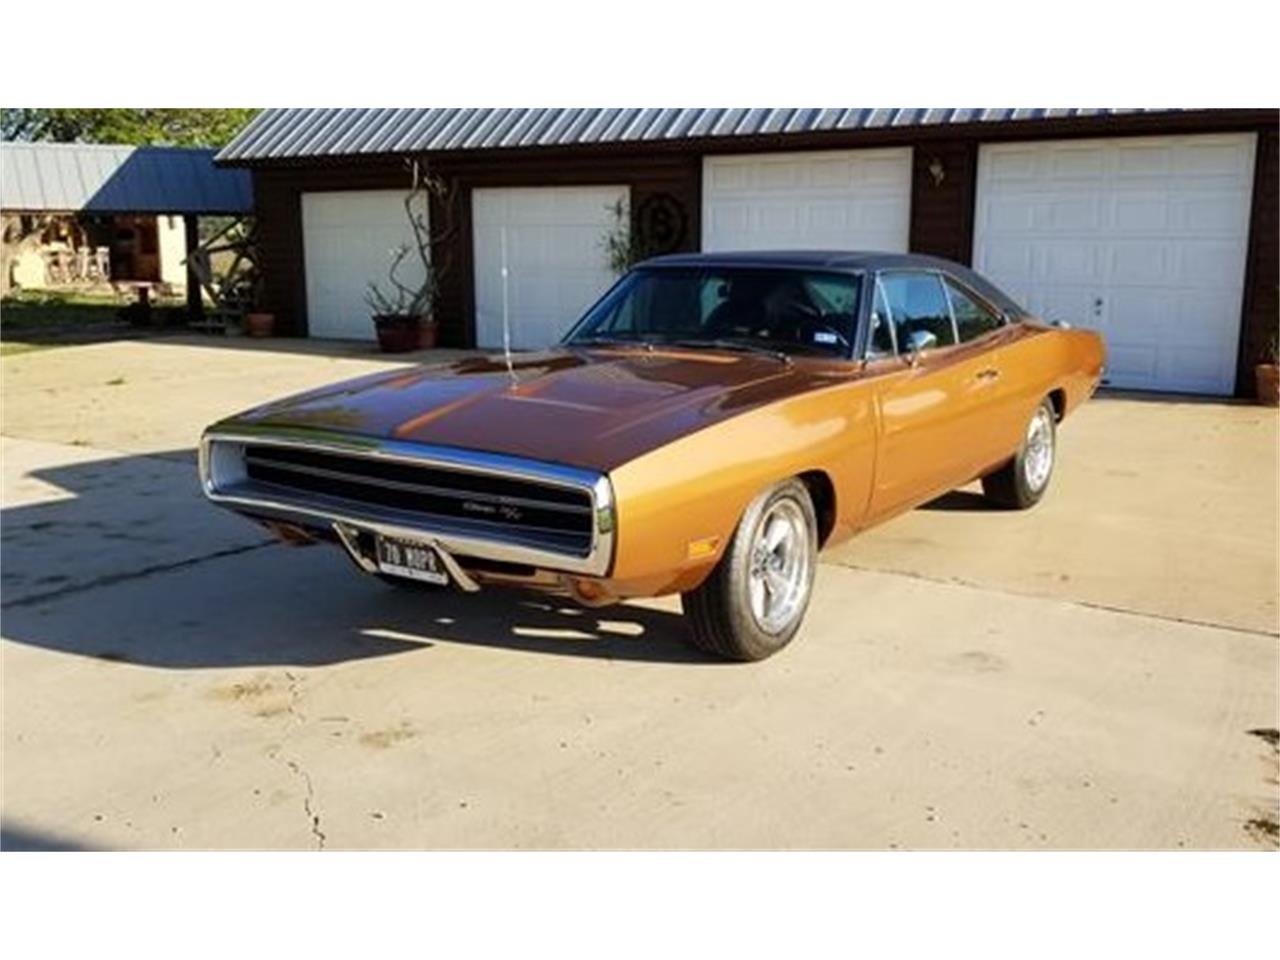 for sale 1970 dodge charger in san antonio, texas cars - san antonio, tx at geebo